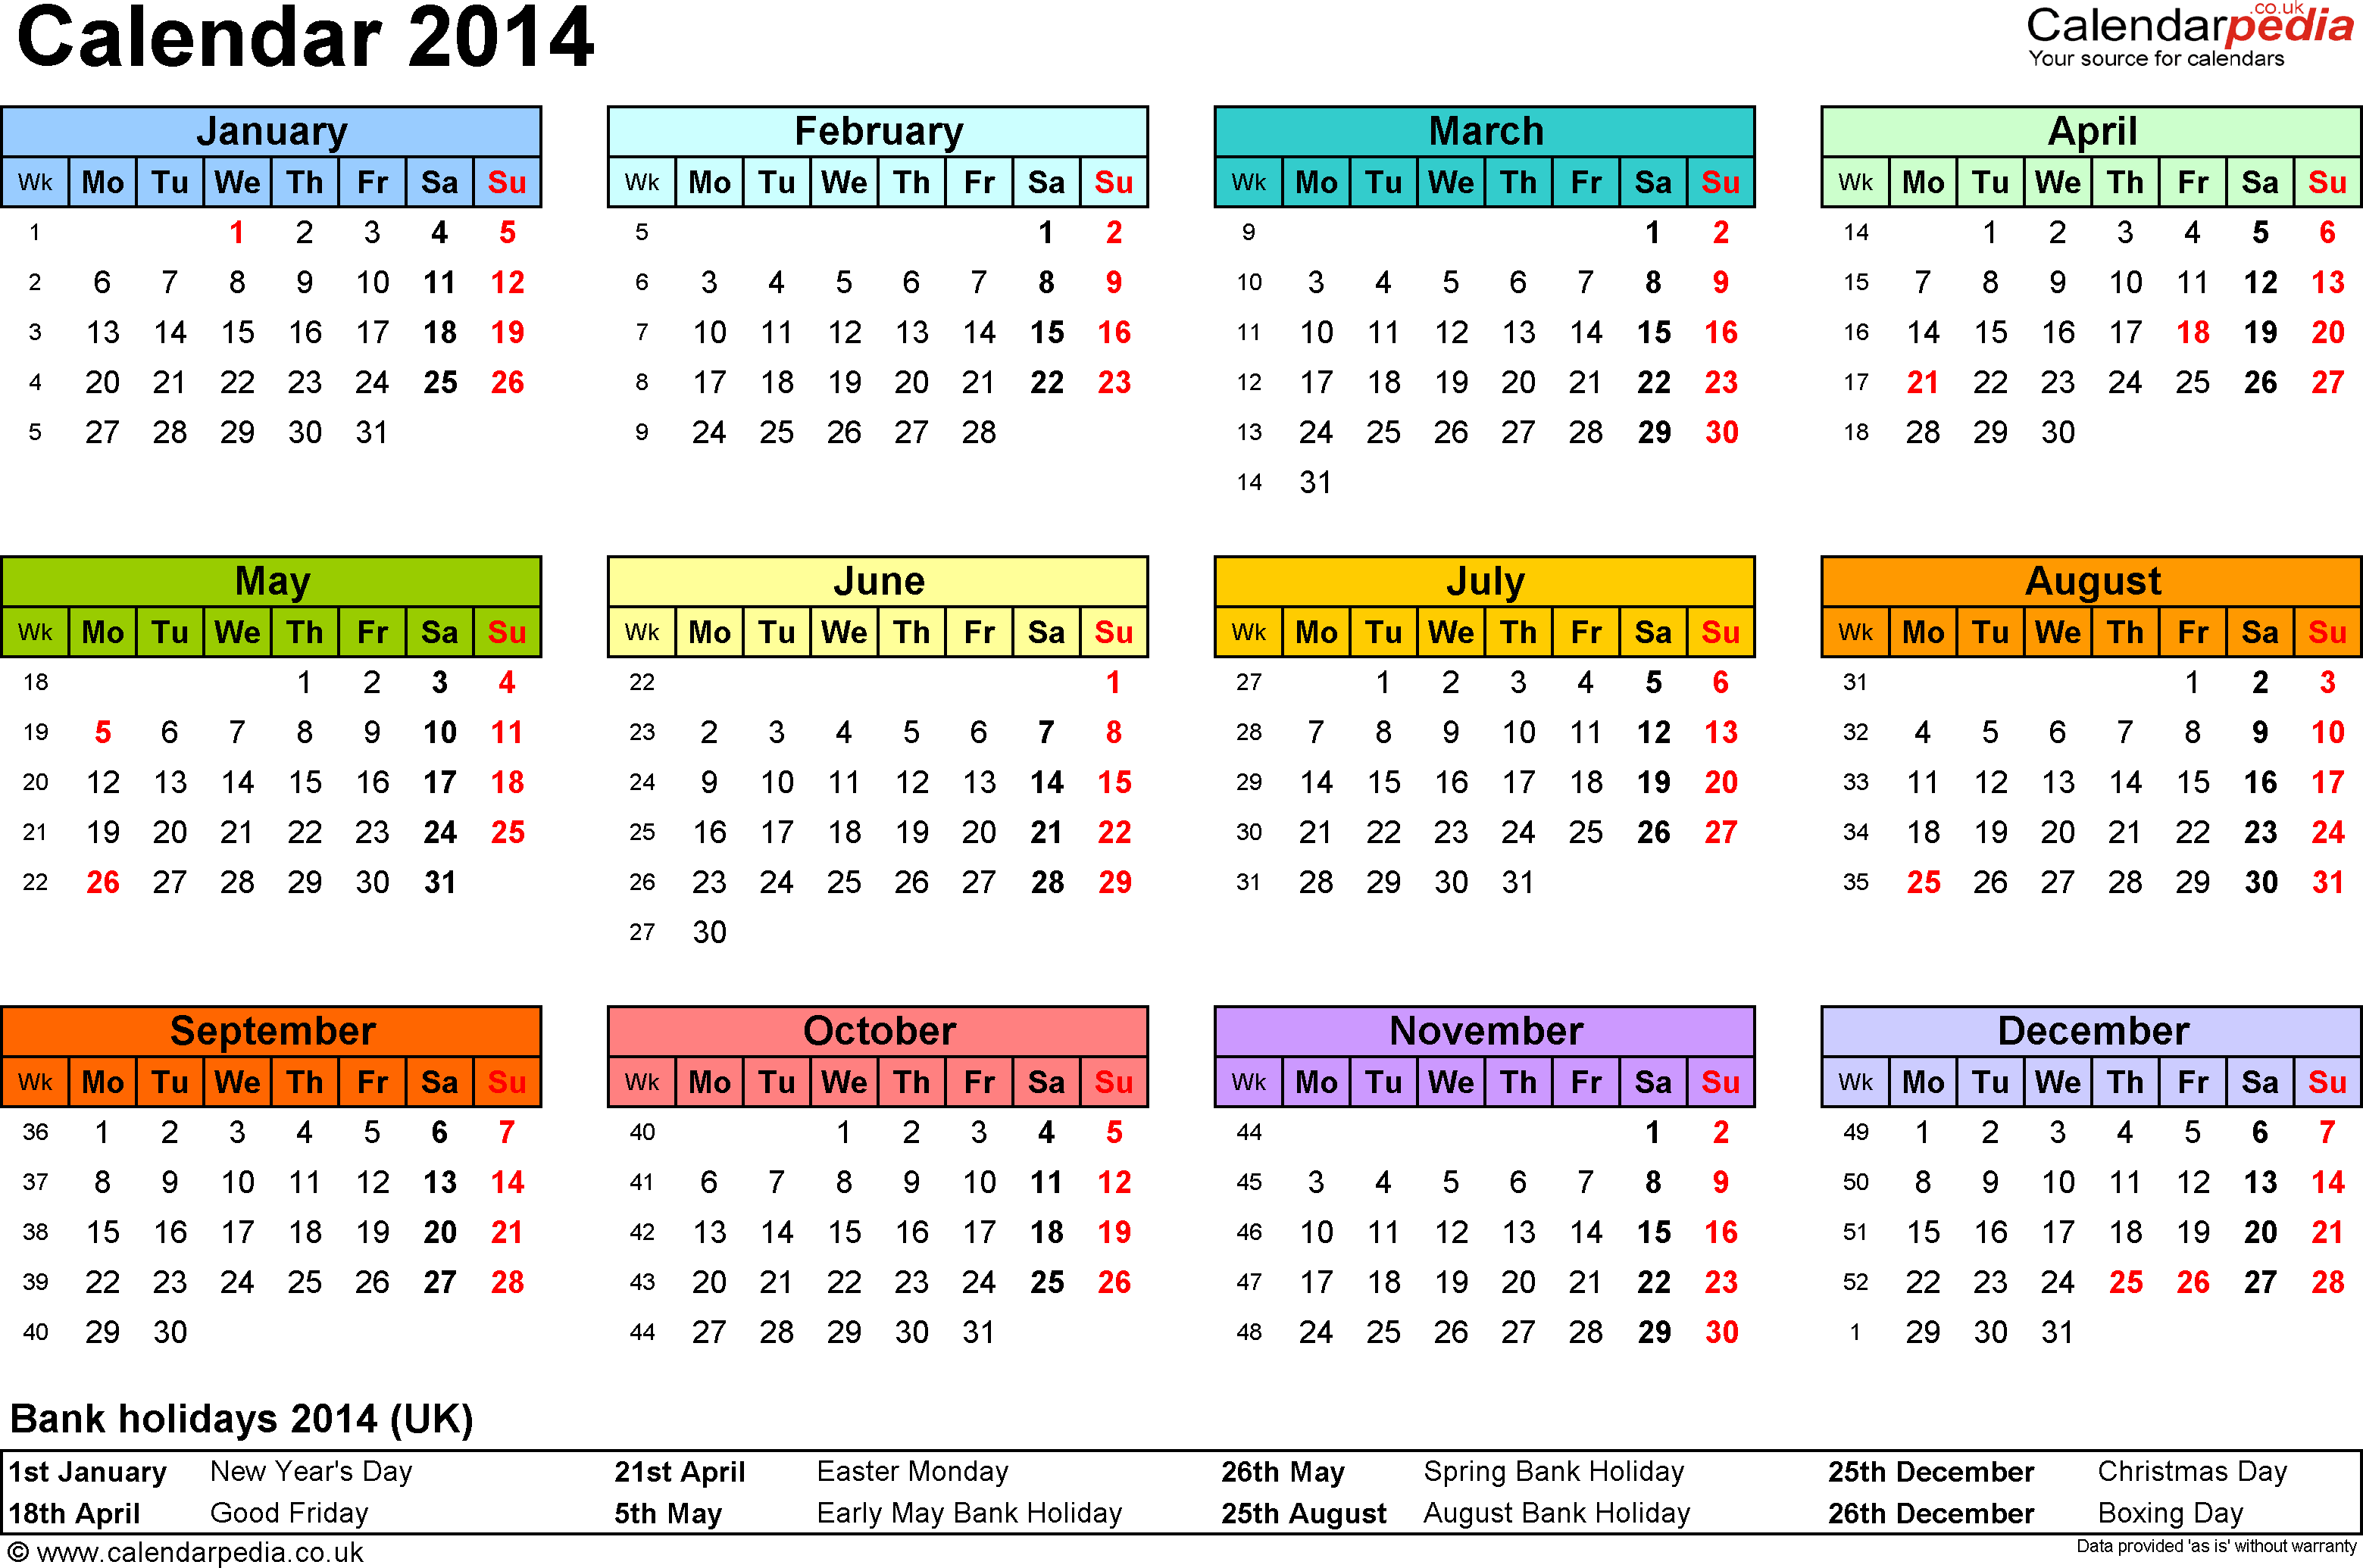 Download Template 7: Yearly calendar 2014 as Word template, landscape orientation, year overview in colour, 1 page